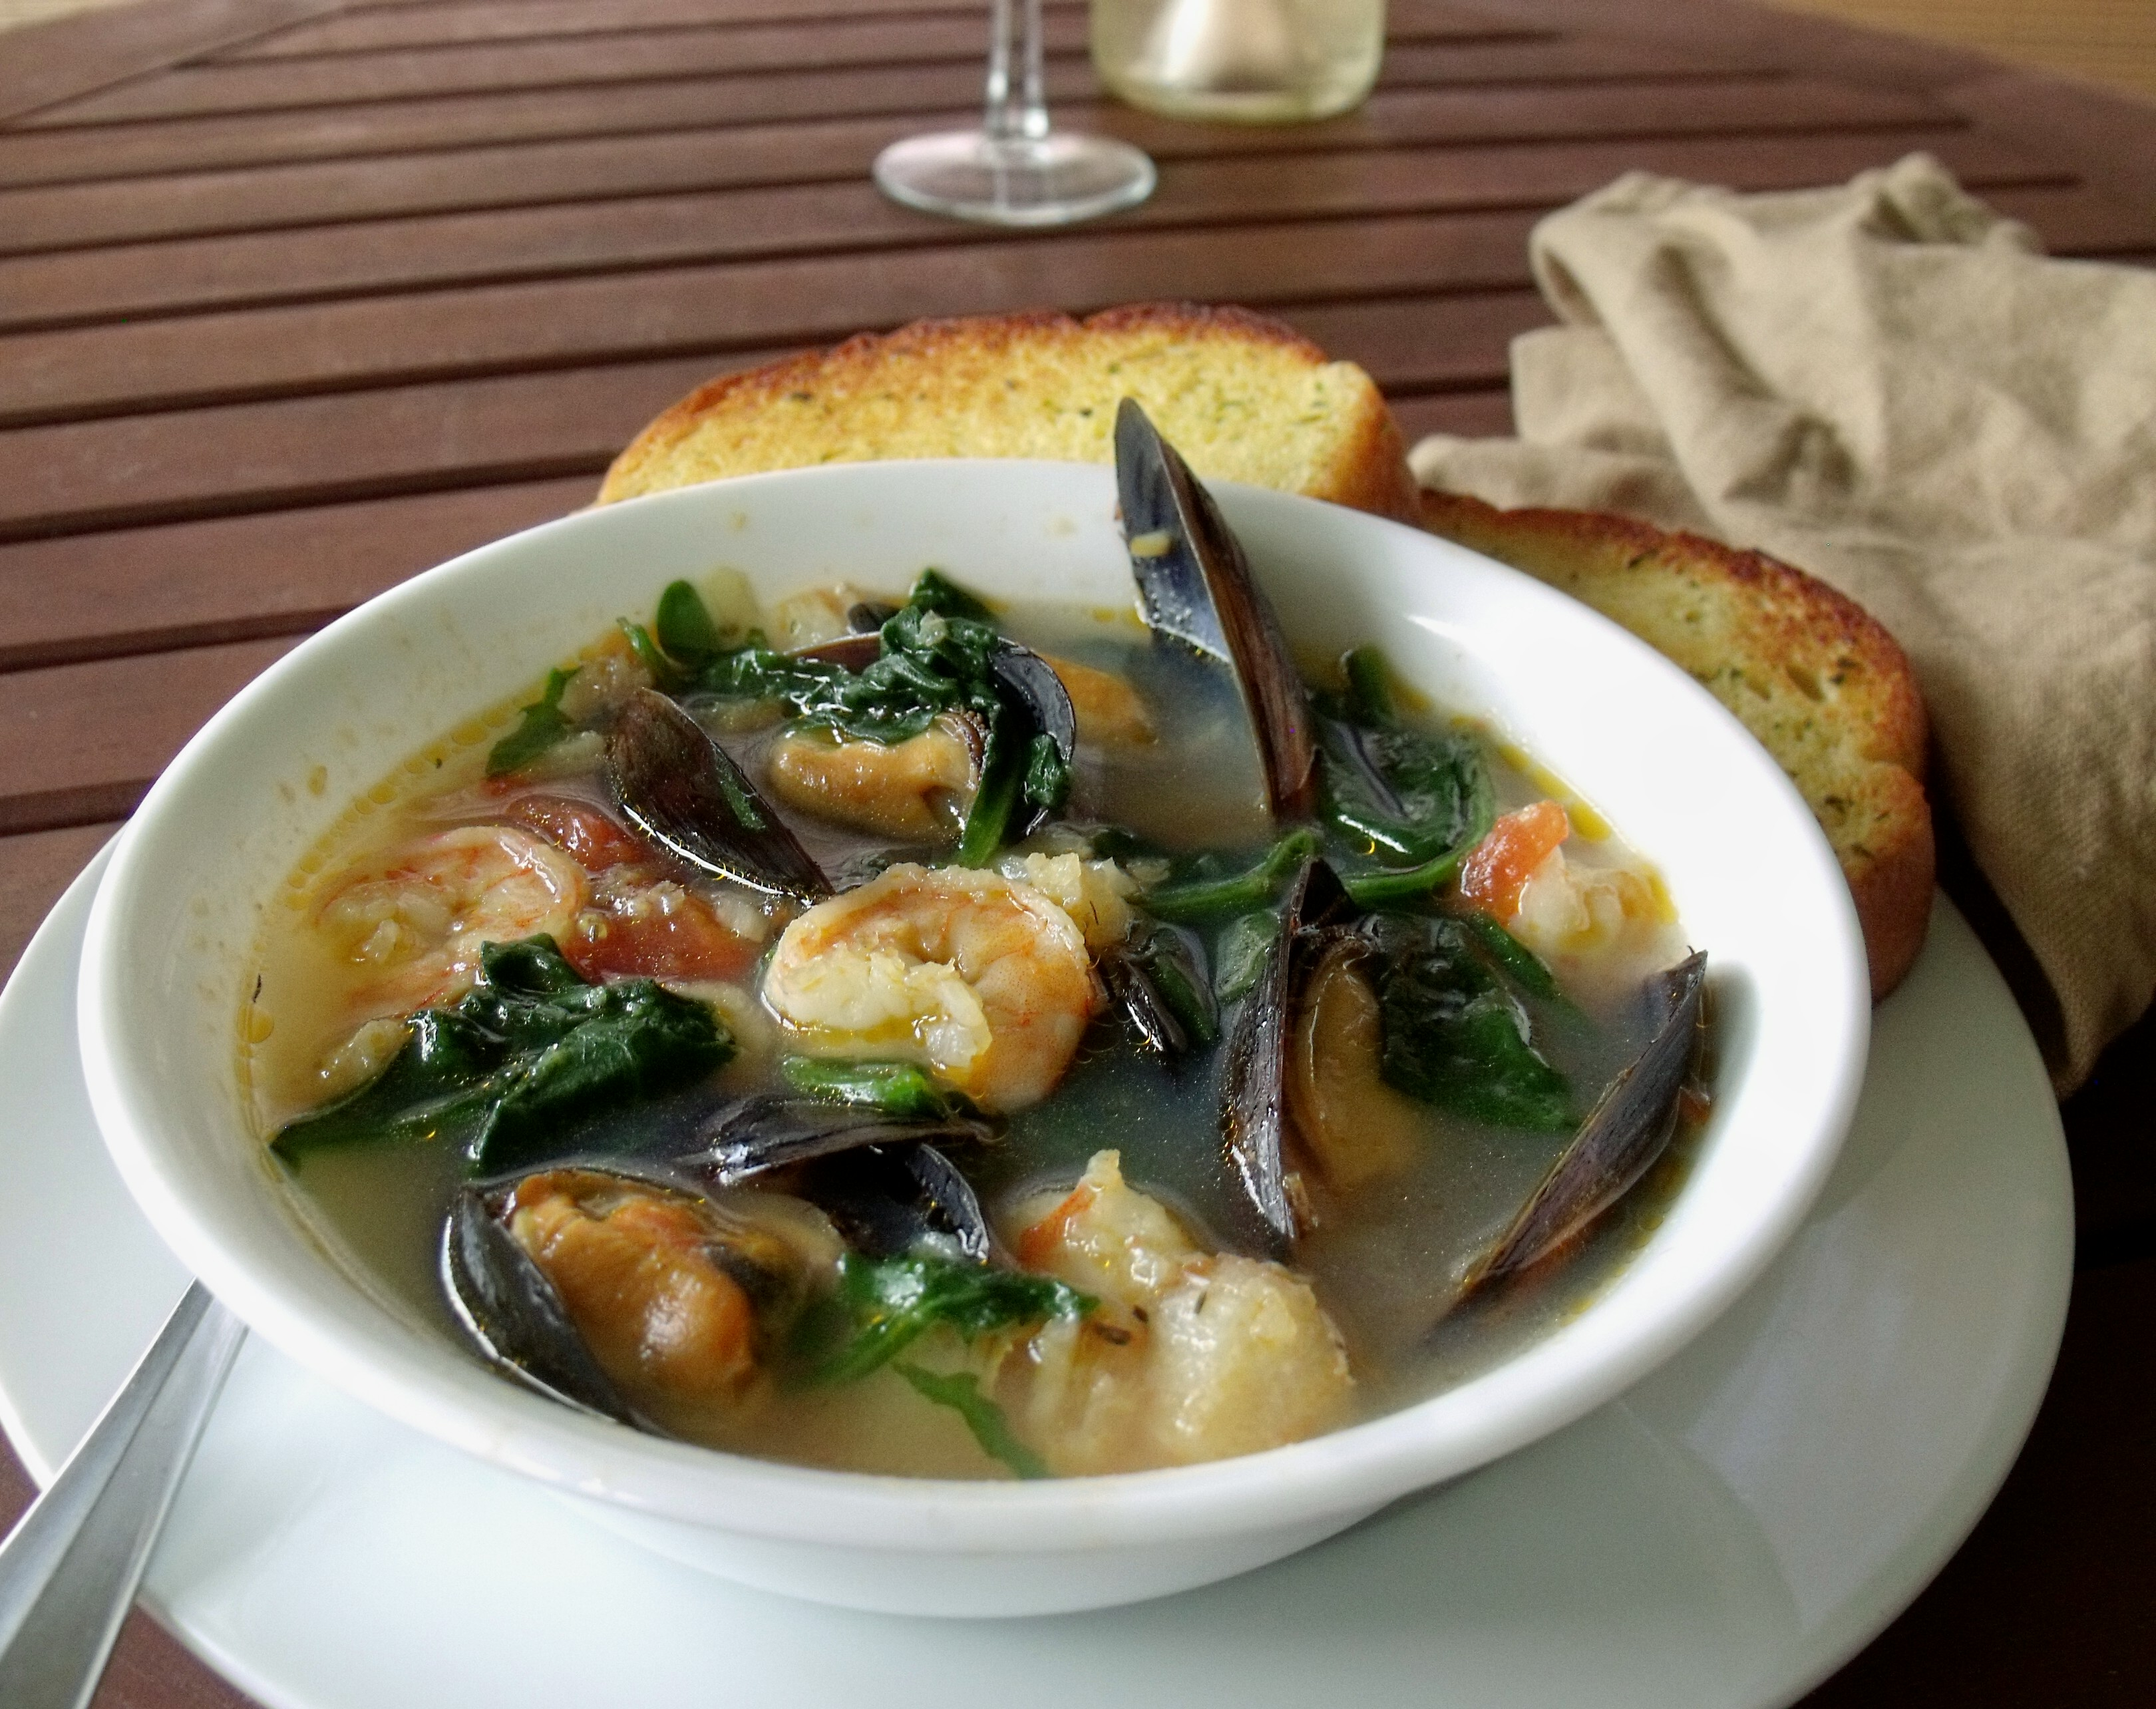 Seafood stew cindy 39 s recipes and writings for Recipe for seafood stew